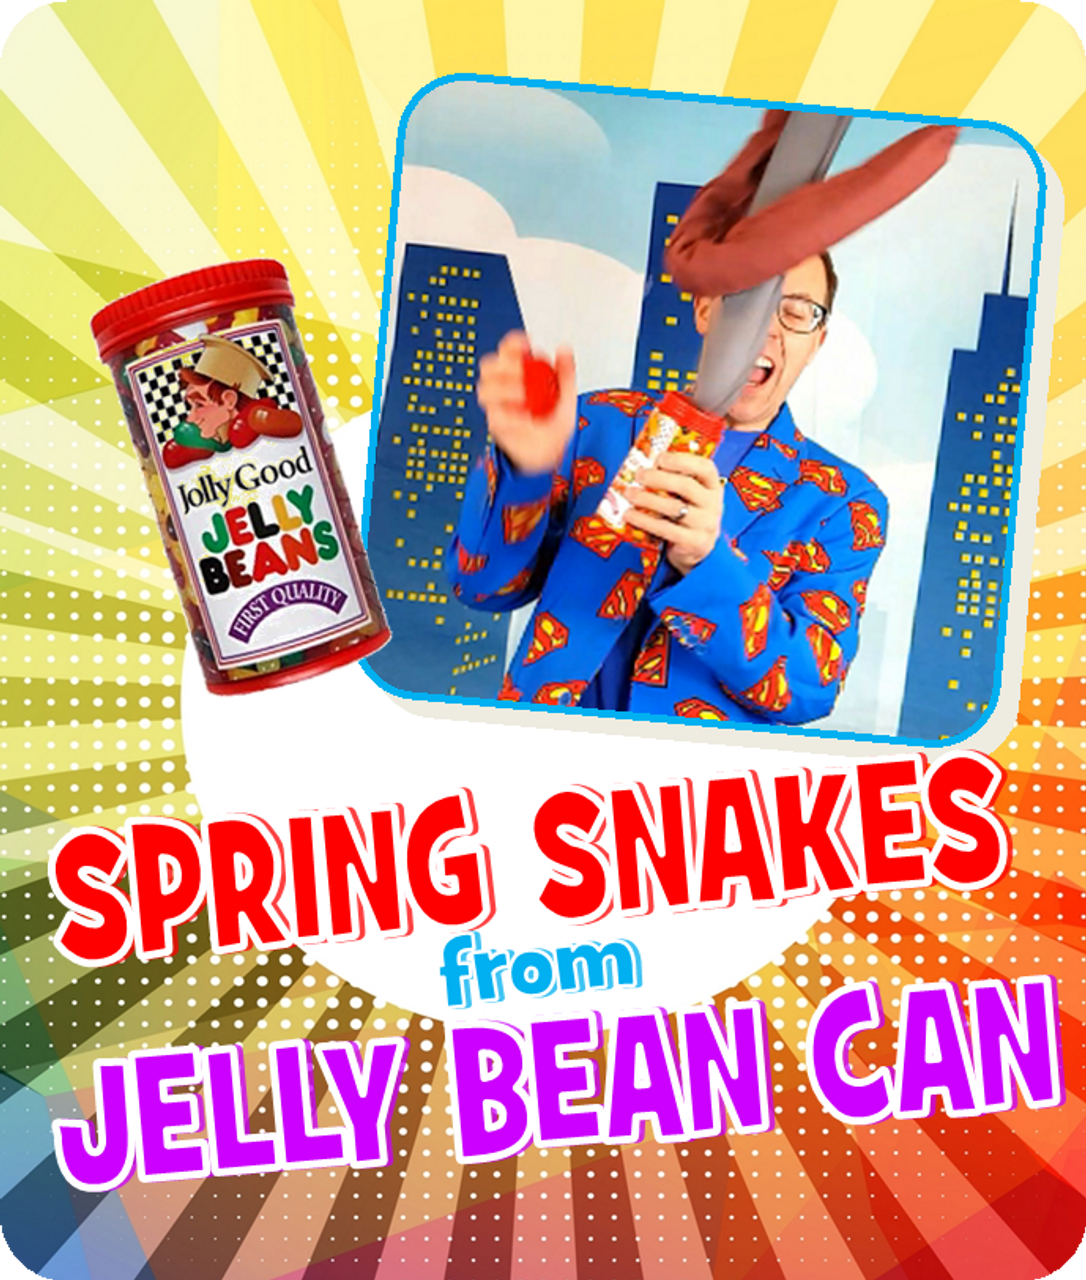 Spring Snakes from Jelly Bean Can Joke Gag Magic Trick Gospel